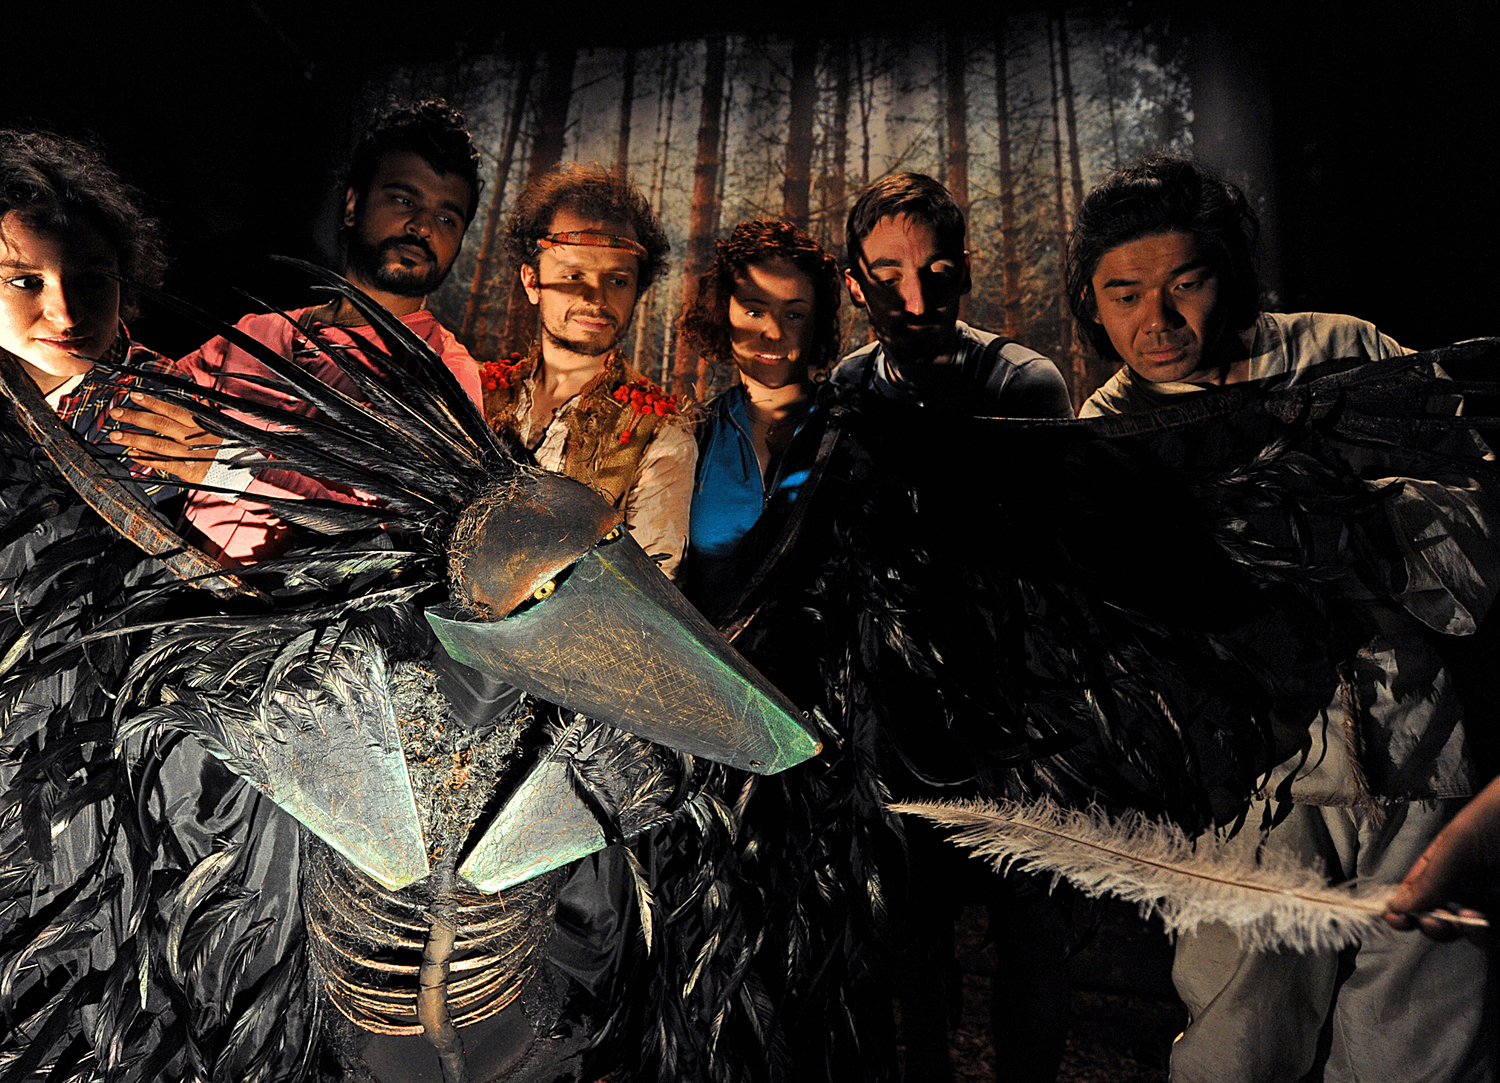 6 performers dressed as pilgrim, in a dark forest, manipulate a large dark ominous looking bird